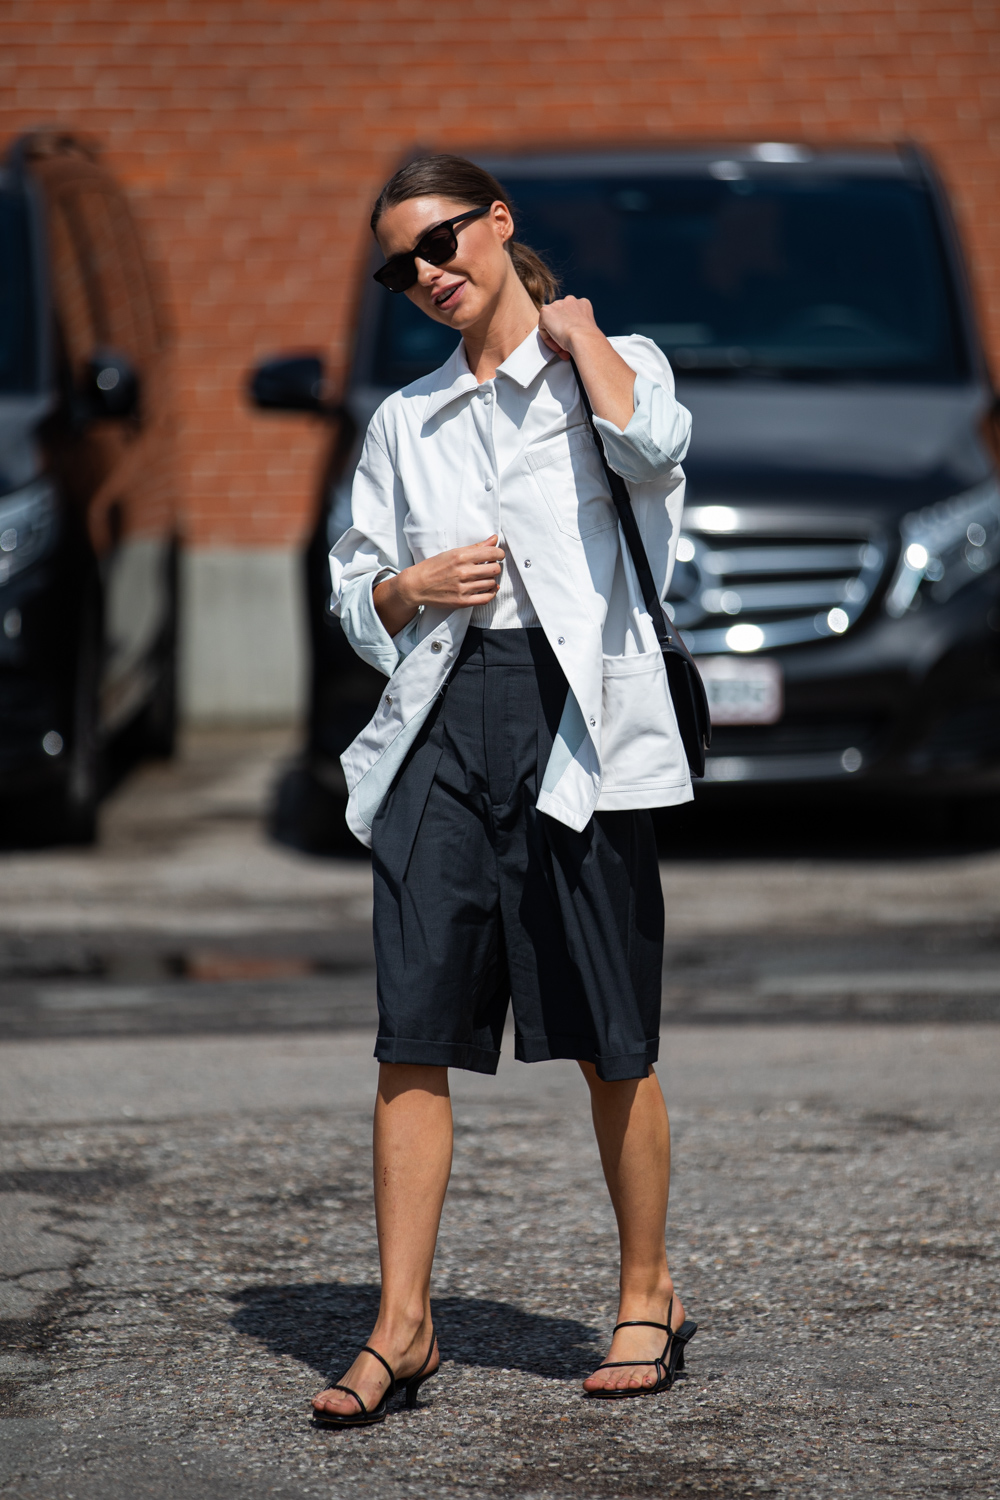 Two Elevated, Minimalist Looks to Recreate for Fall – Utility Jacket Oversized Long Shorts